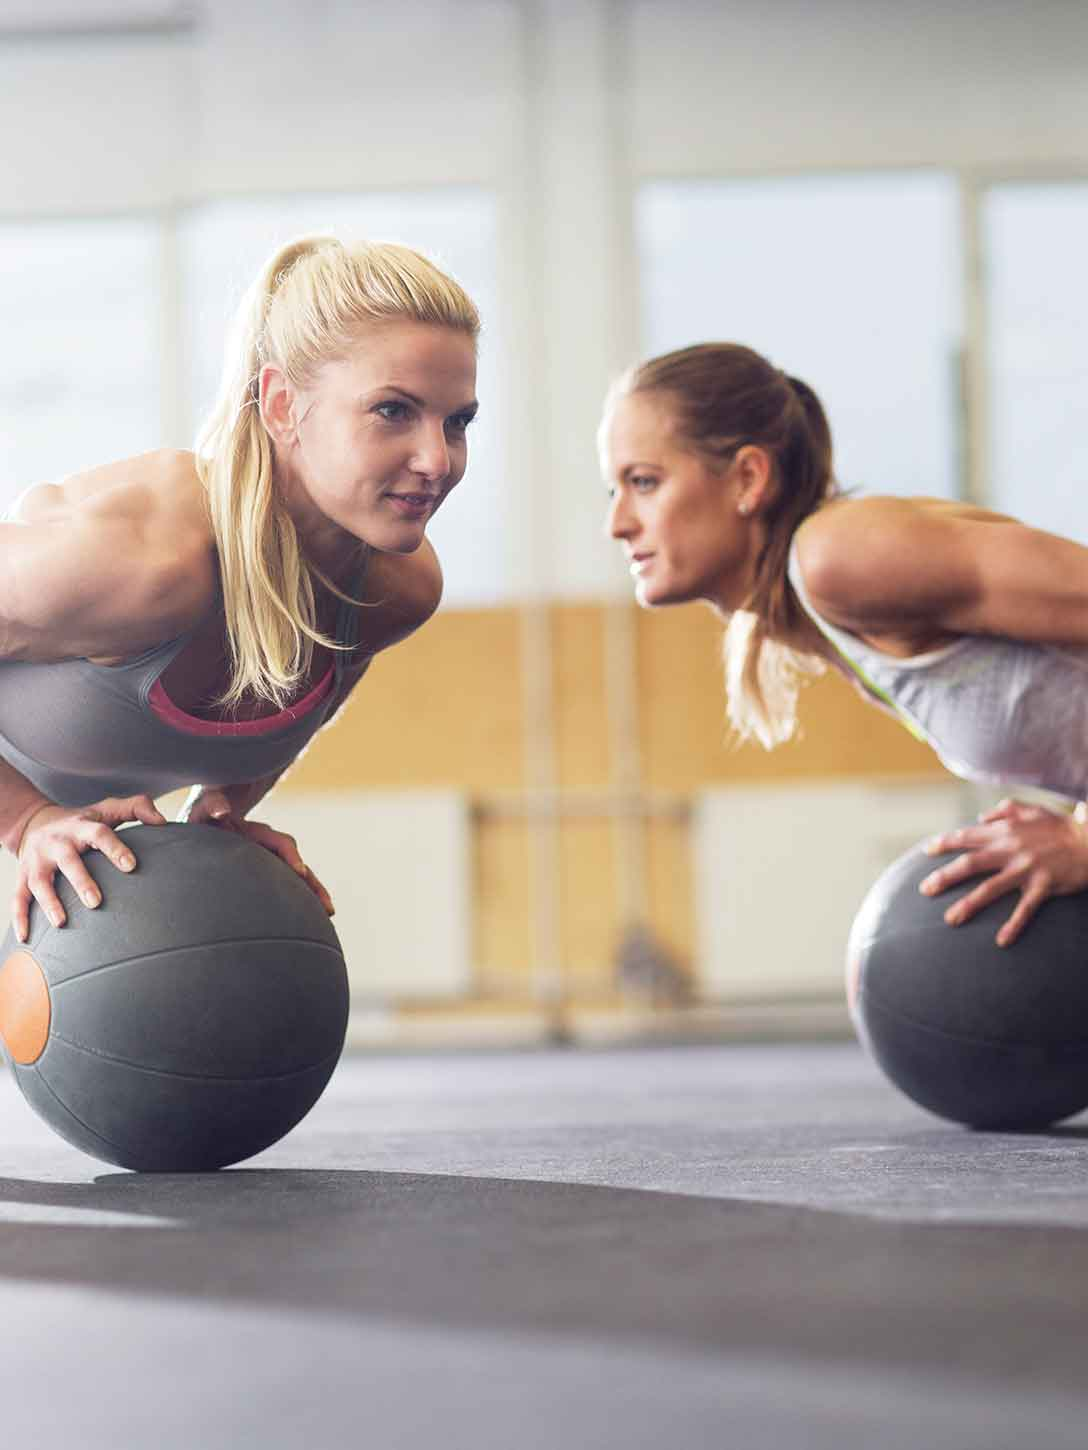 Smiling adults working out on balance balls in a group exercise class